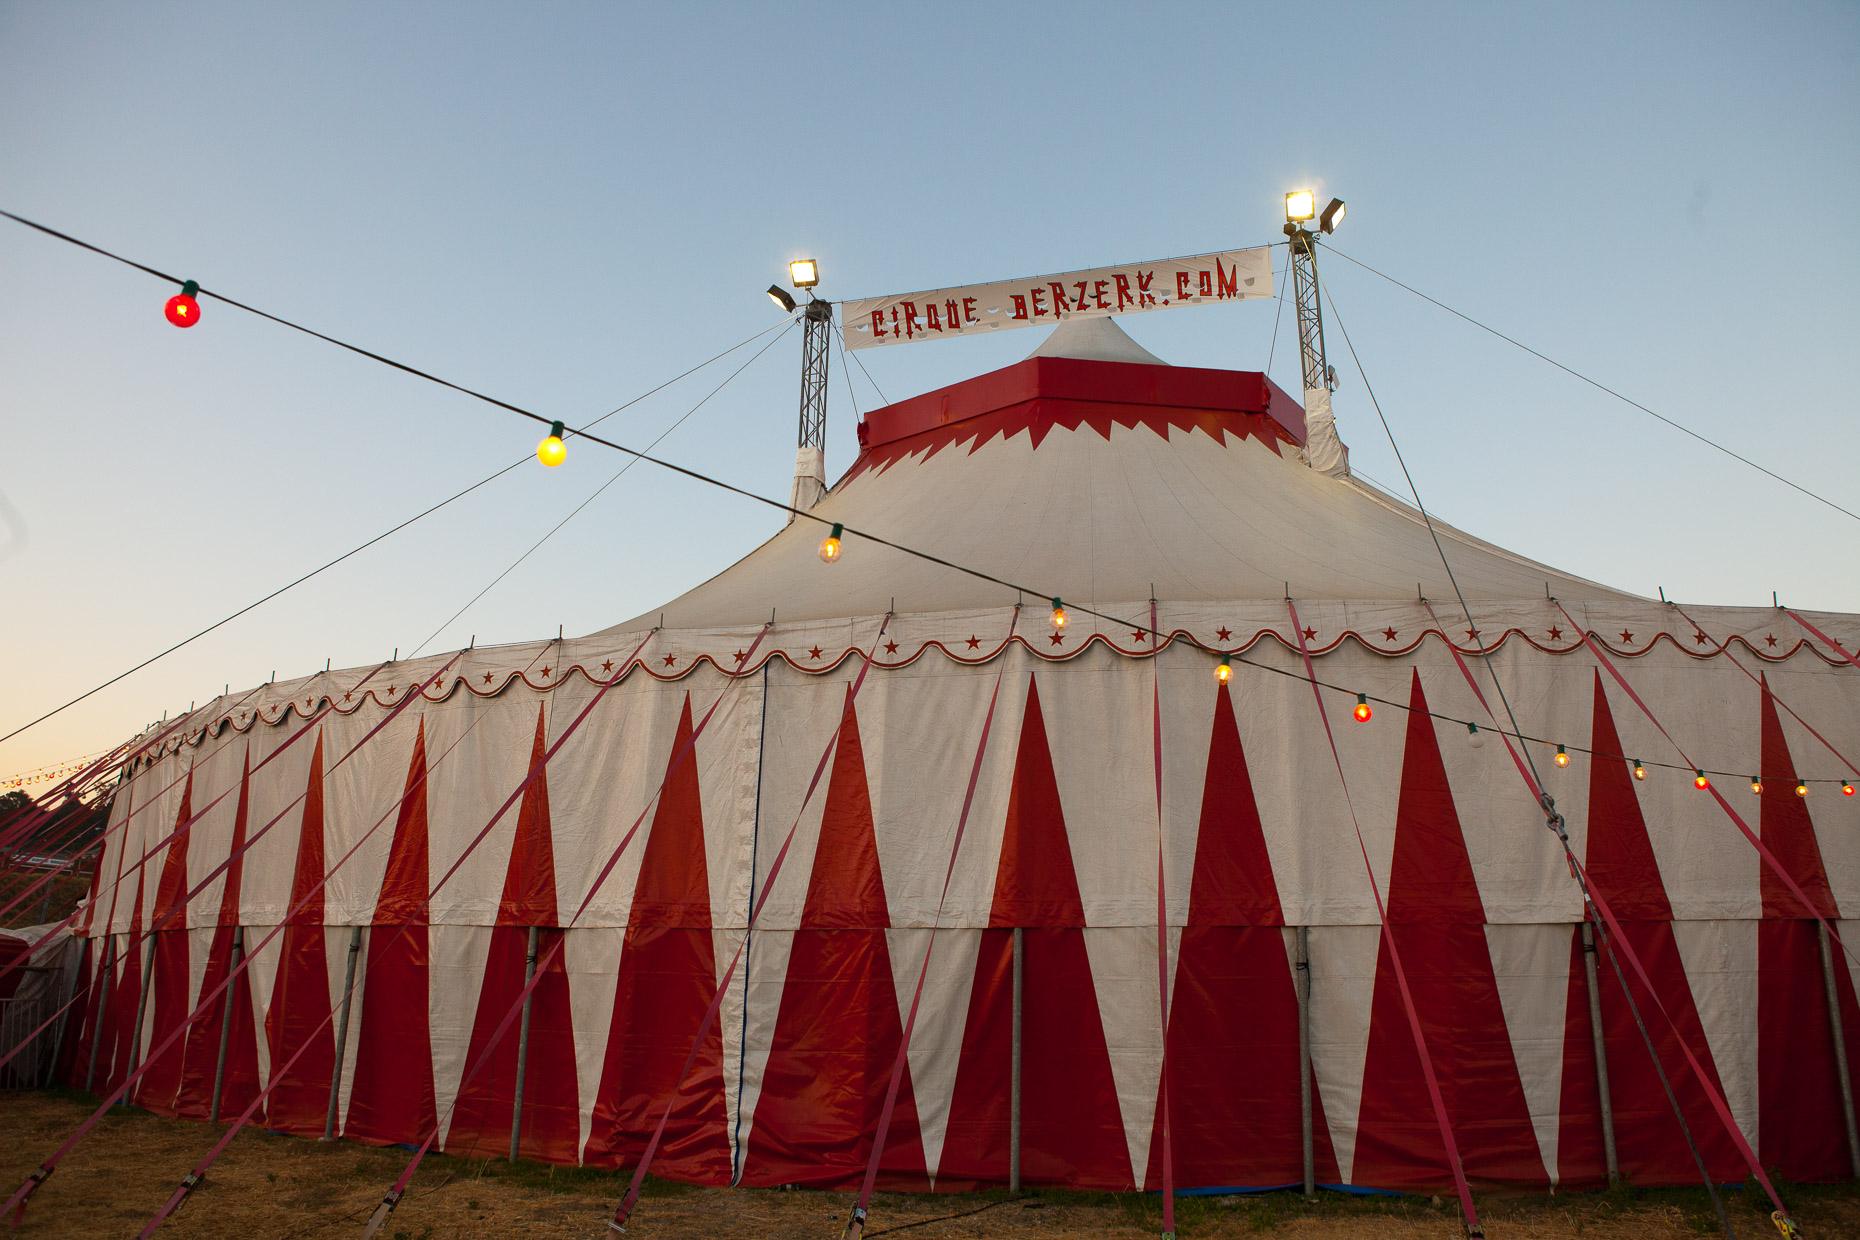 Circus tent at Cirque Berzerk circus performers, by David Zaitz